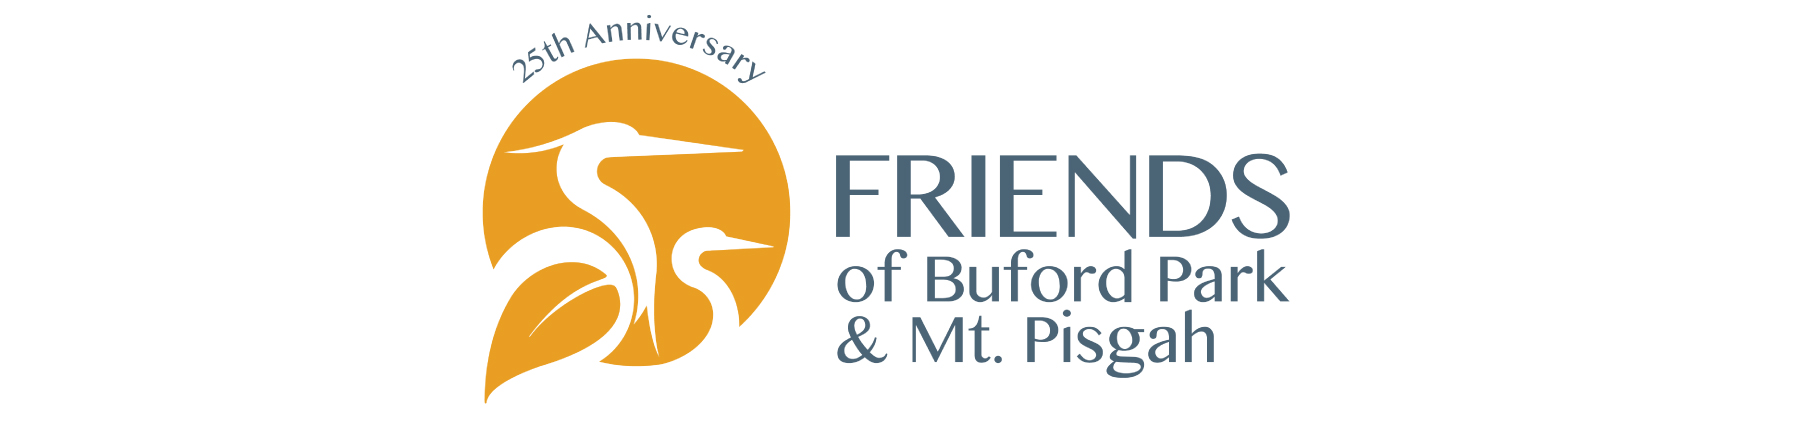 friends of buford park logo